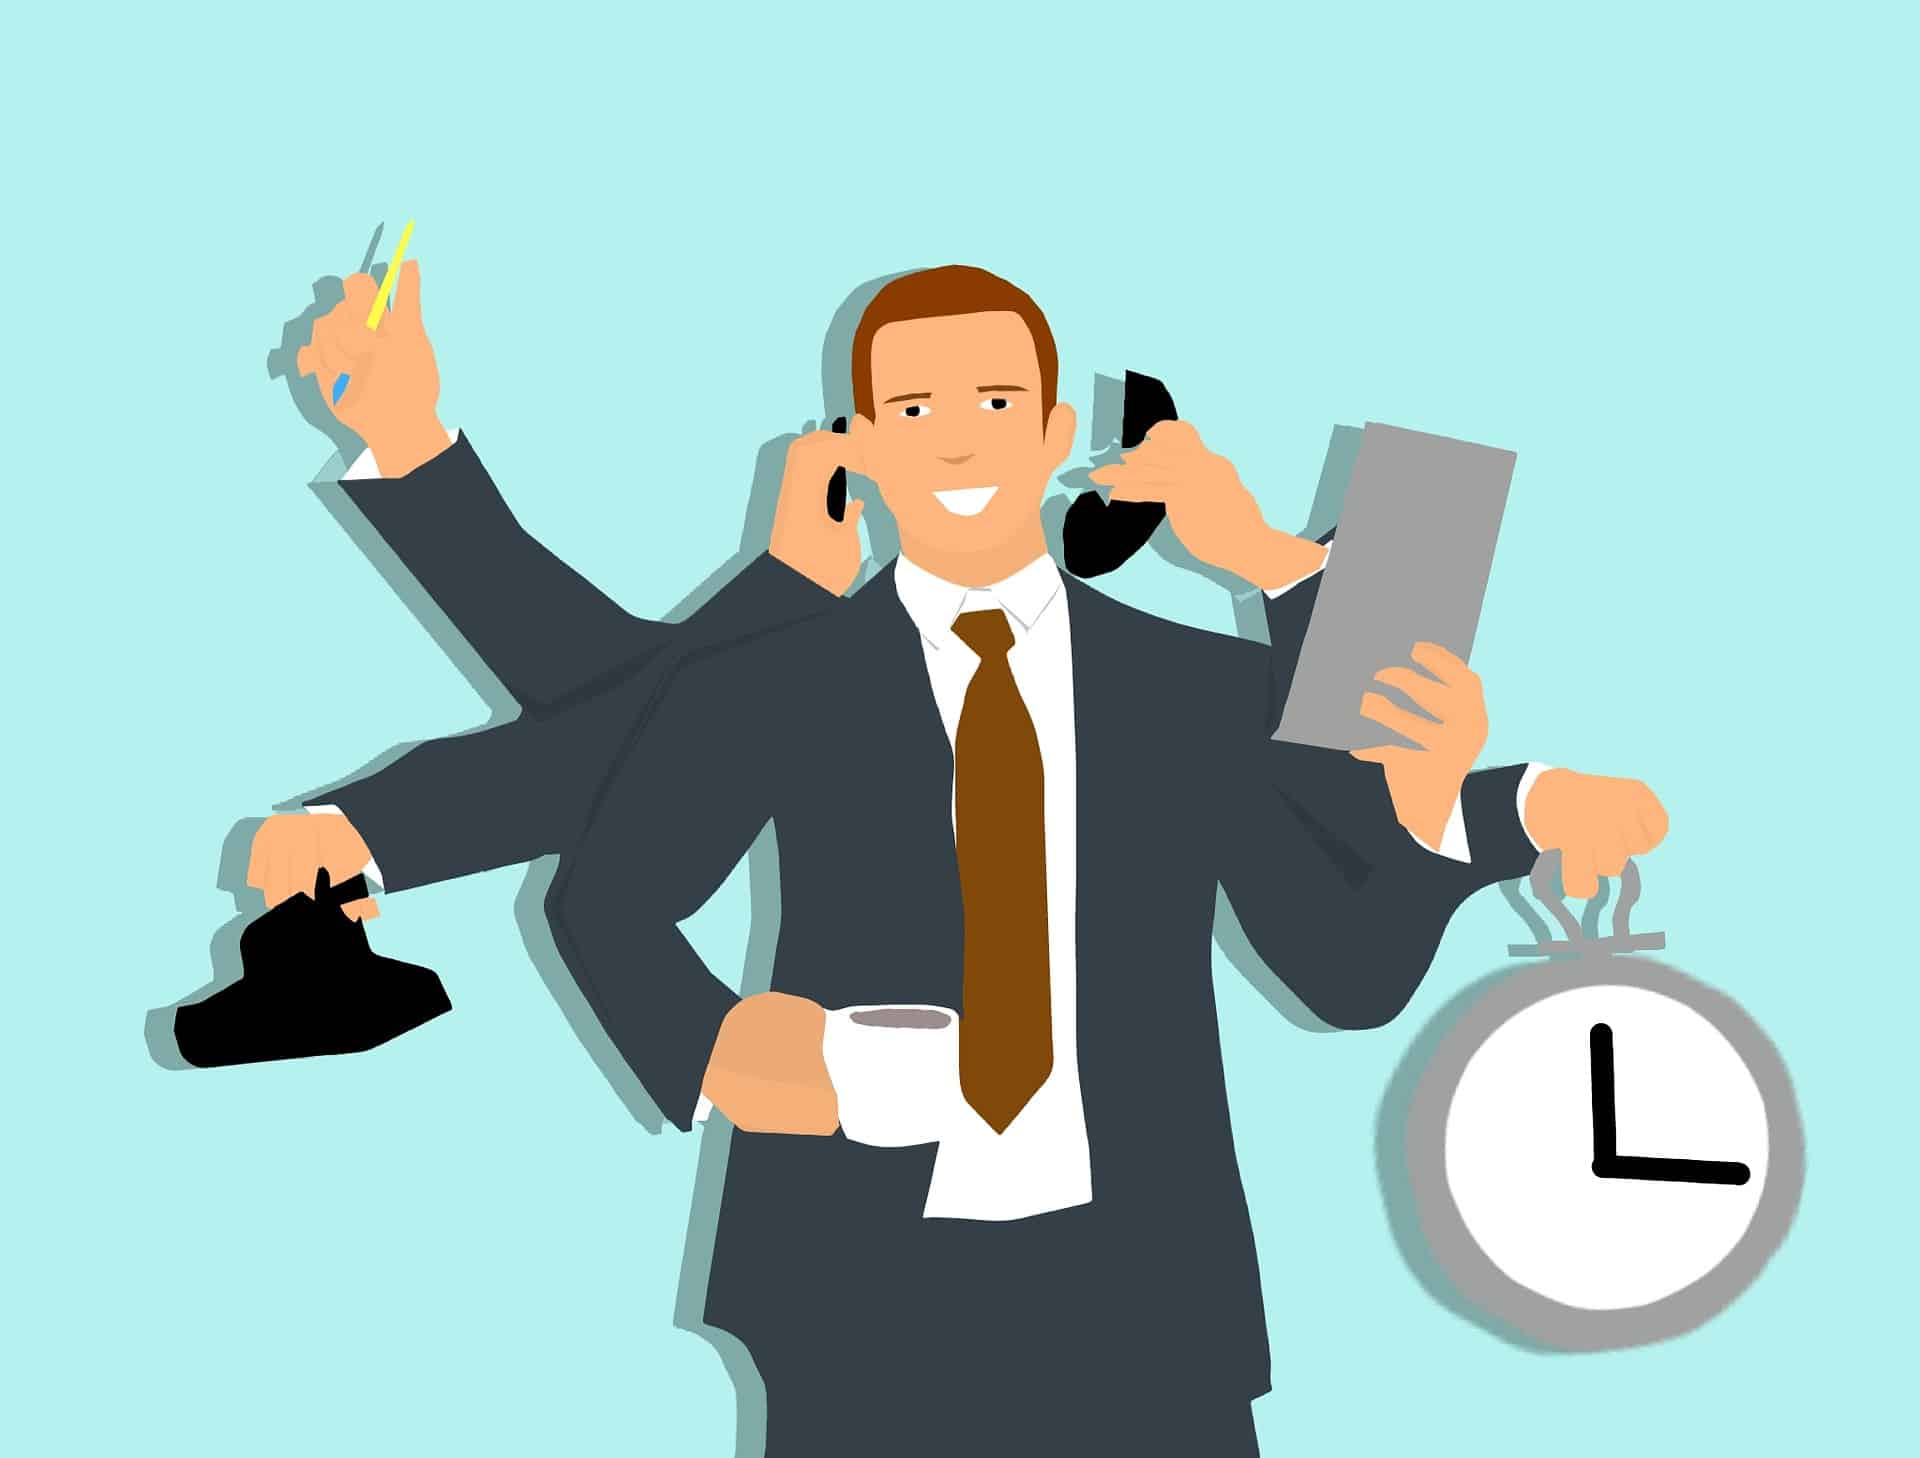 10 Excellent Customer Service Tips To Stay Ahead